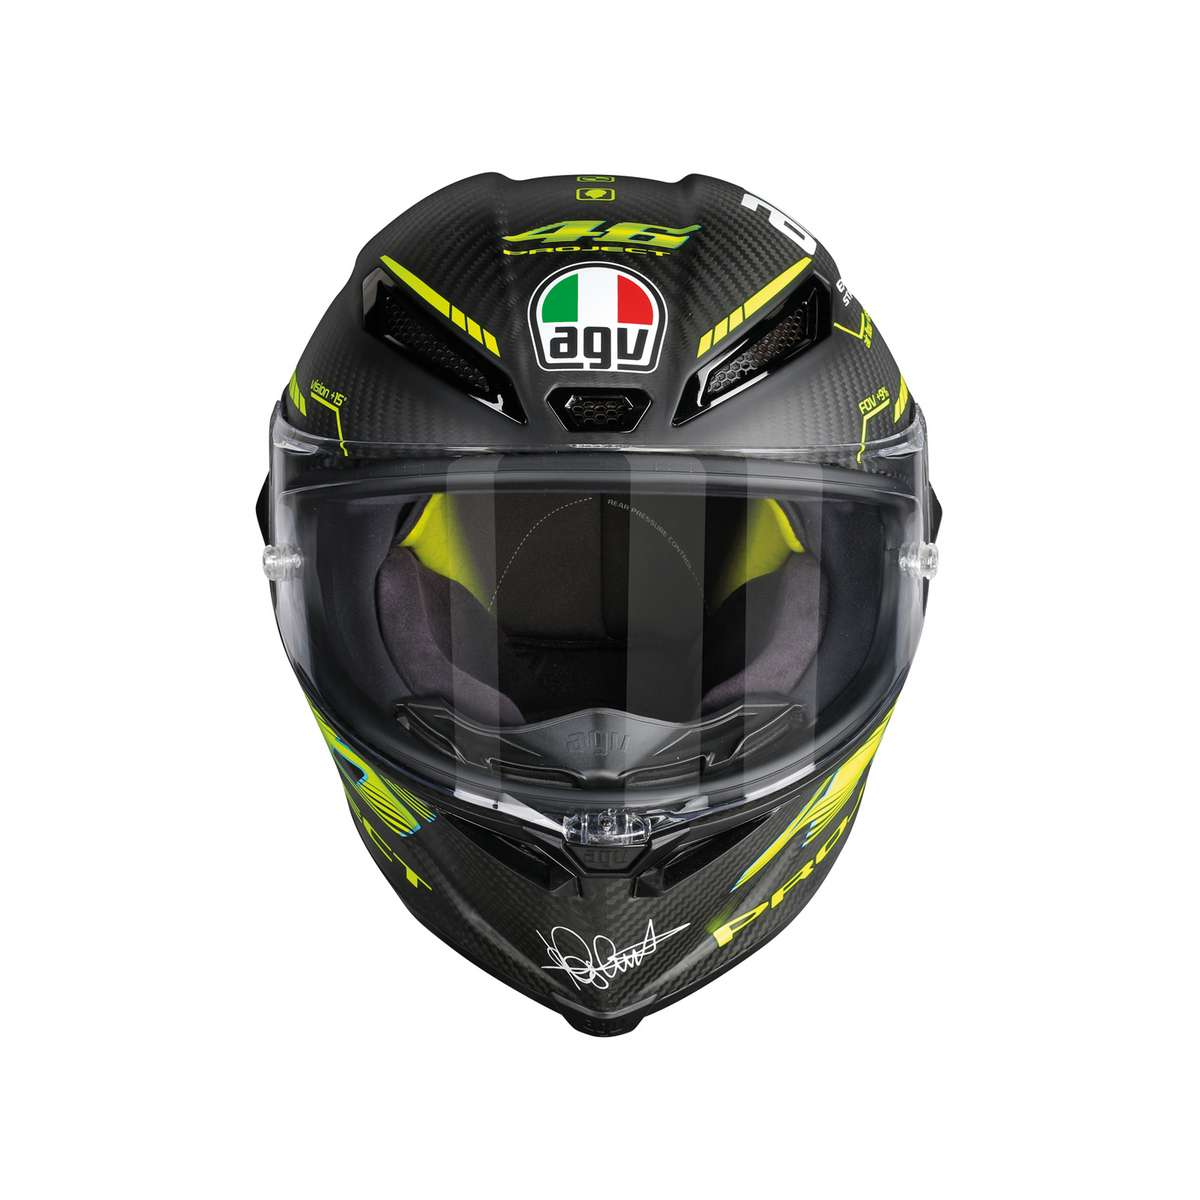 Off Road Tires For Sale >> AGV Pista GP R Top Project 46 2.0 Full Face Helmet ...